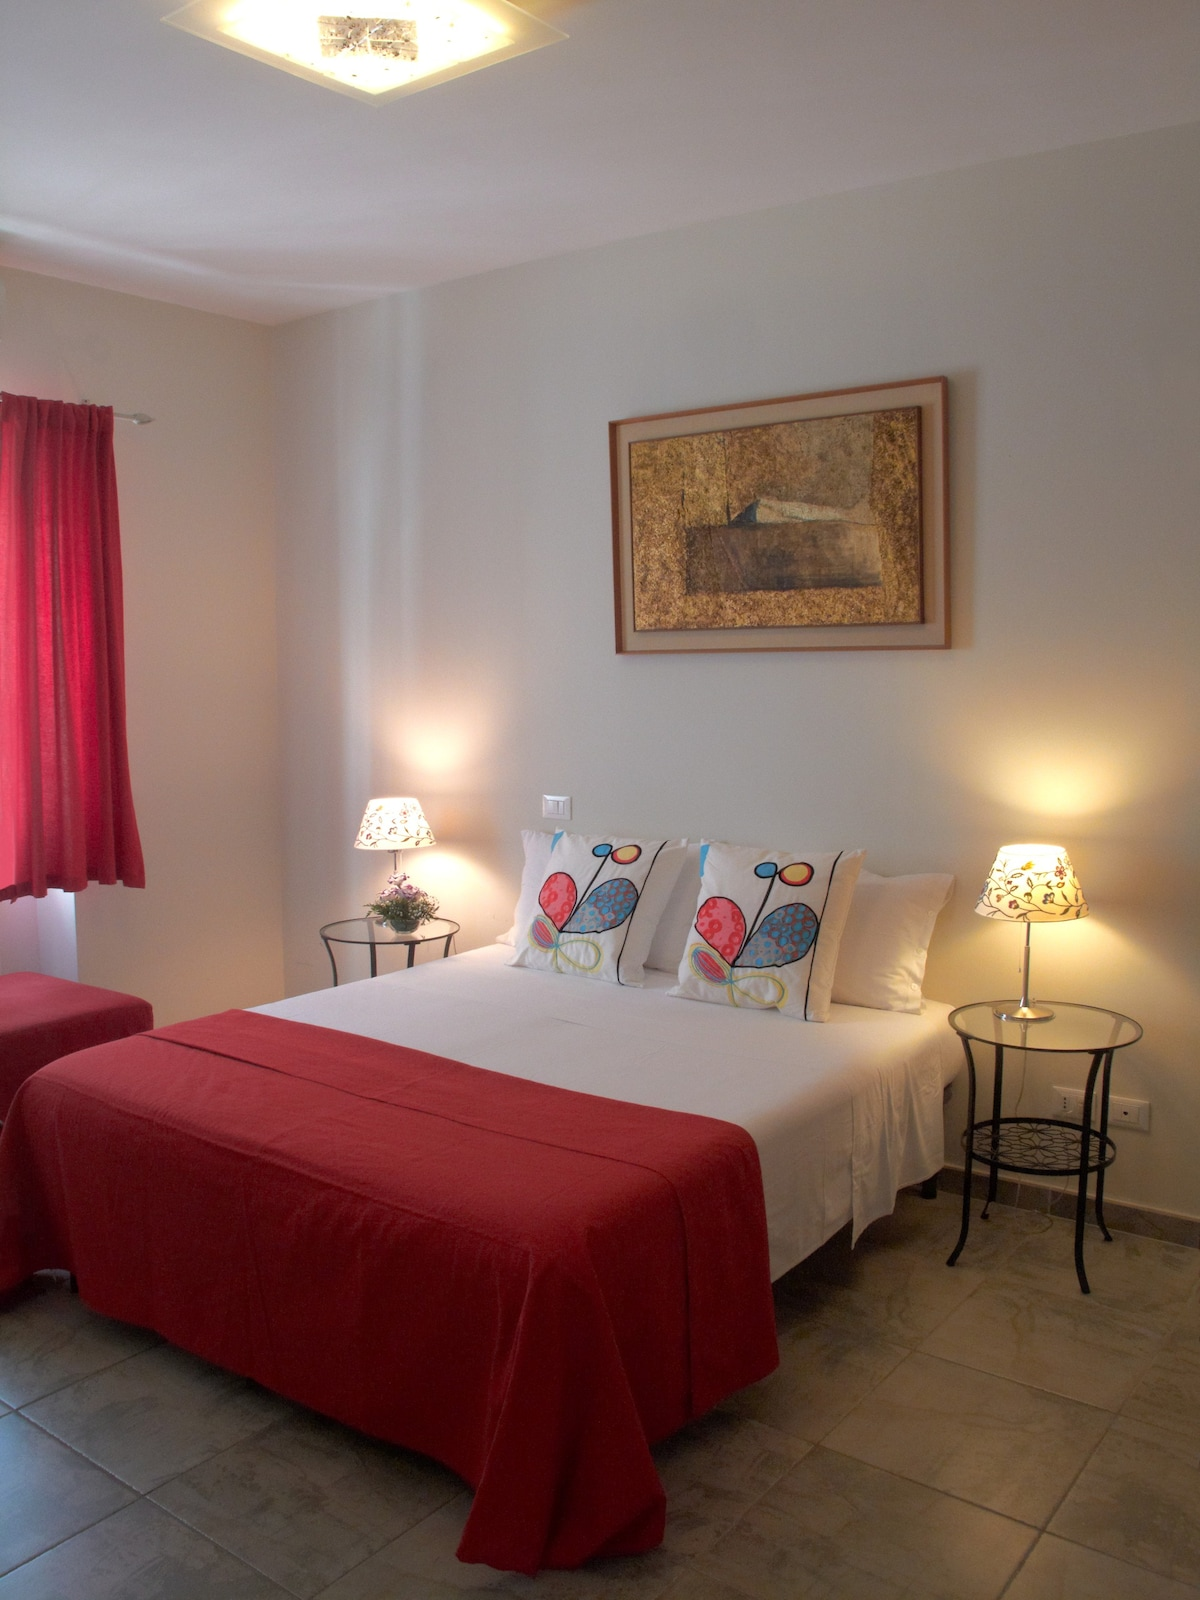 Bed and Breakfast BuongiornoPigneto Bed and breakfasts